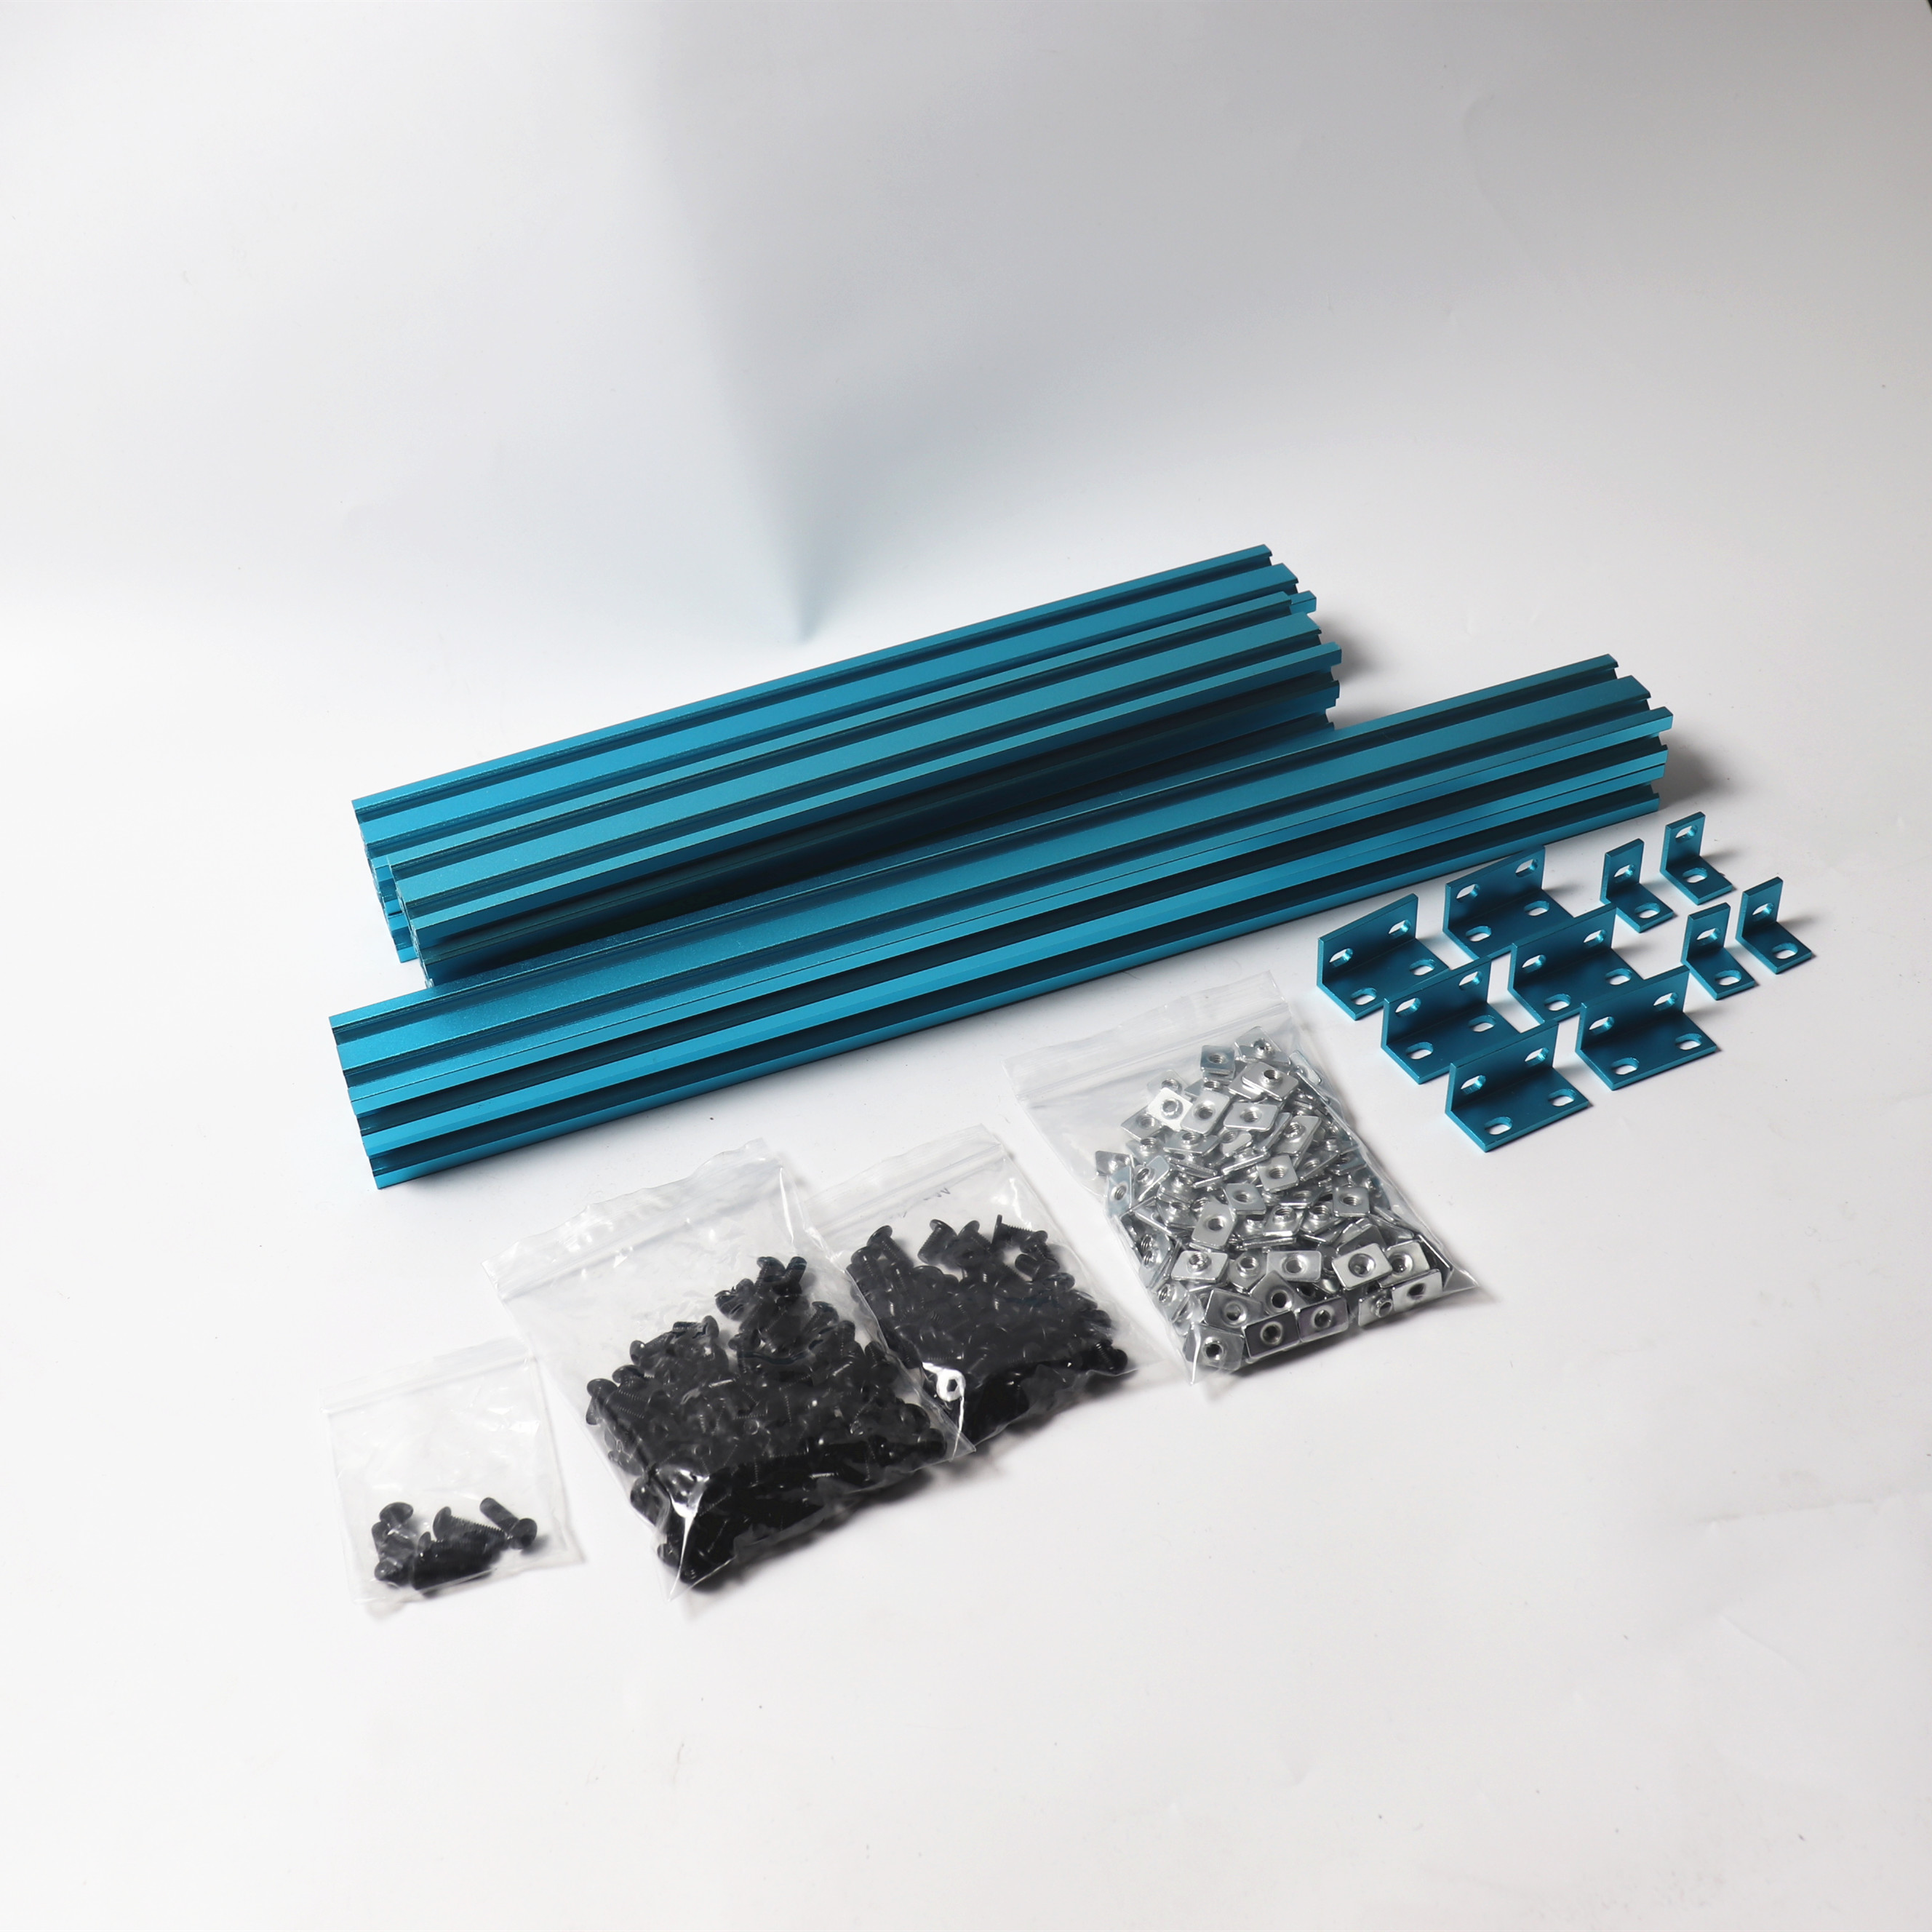 All Black Full Kit for Anet A8 upgrade AM8 3D Printer Extrusion Metal Frame